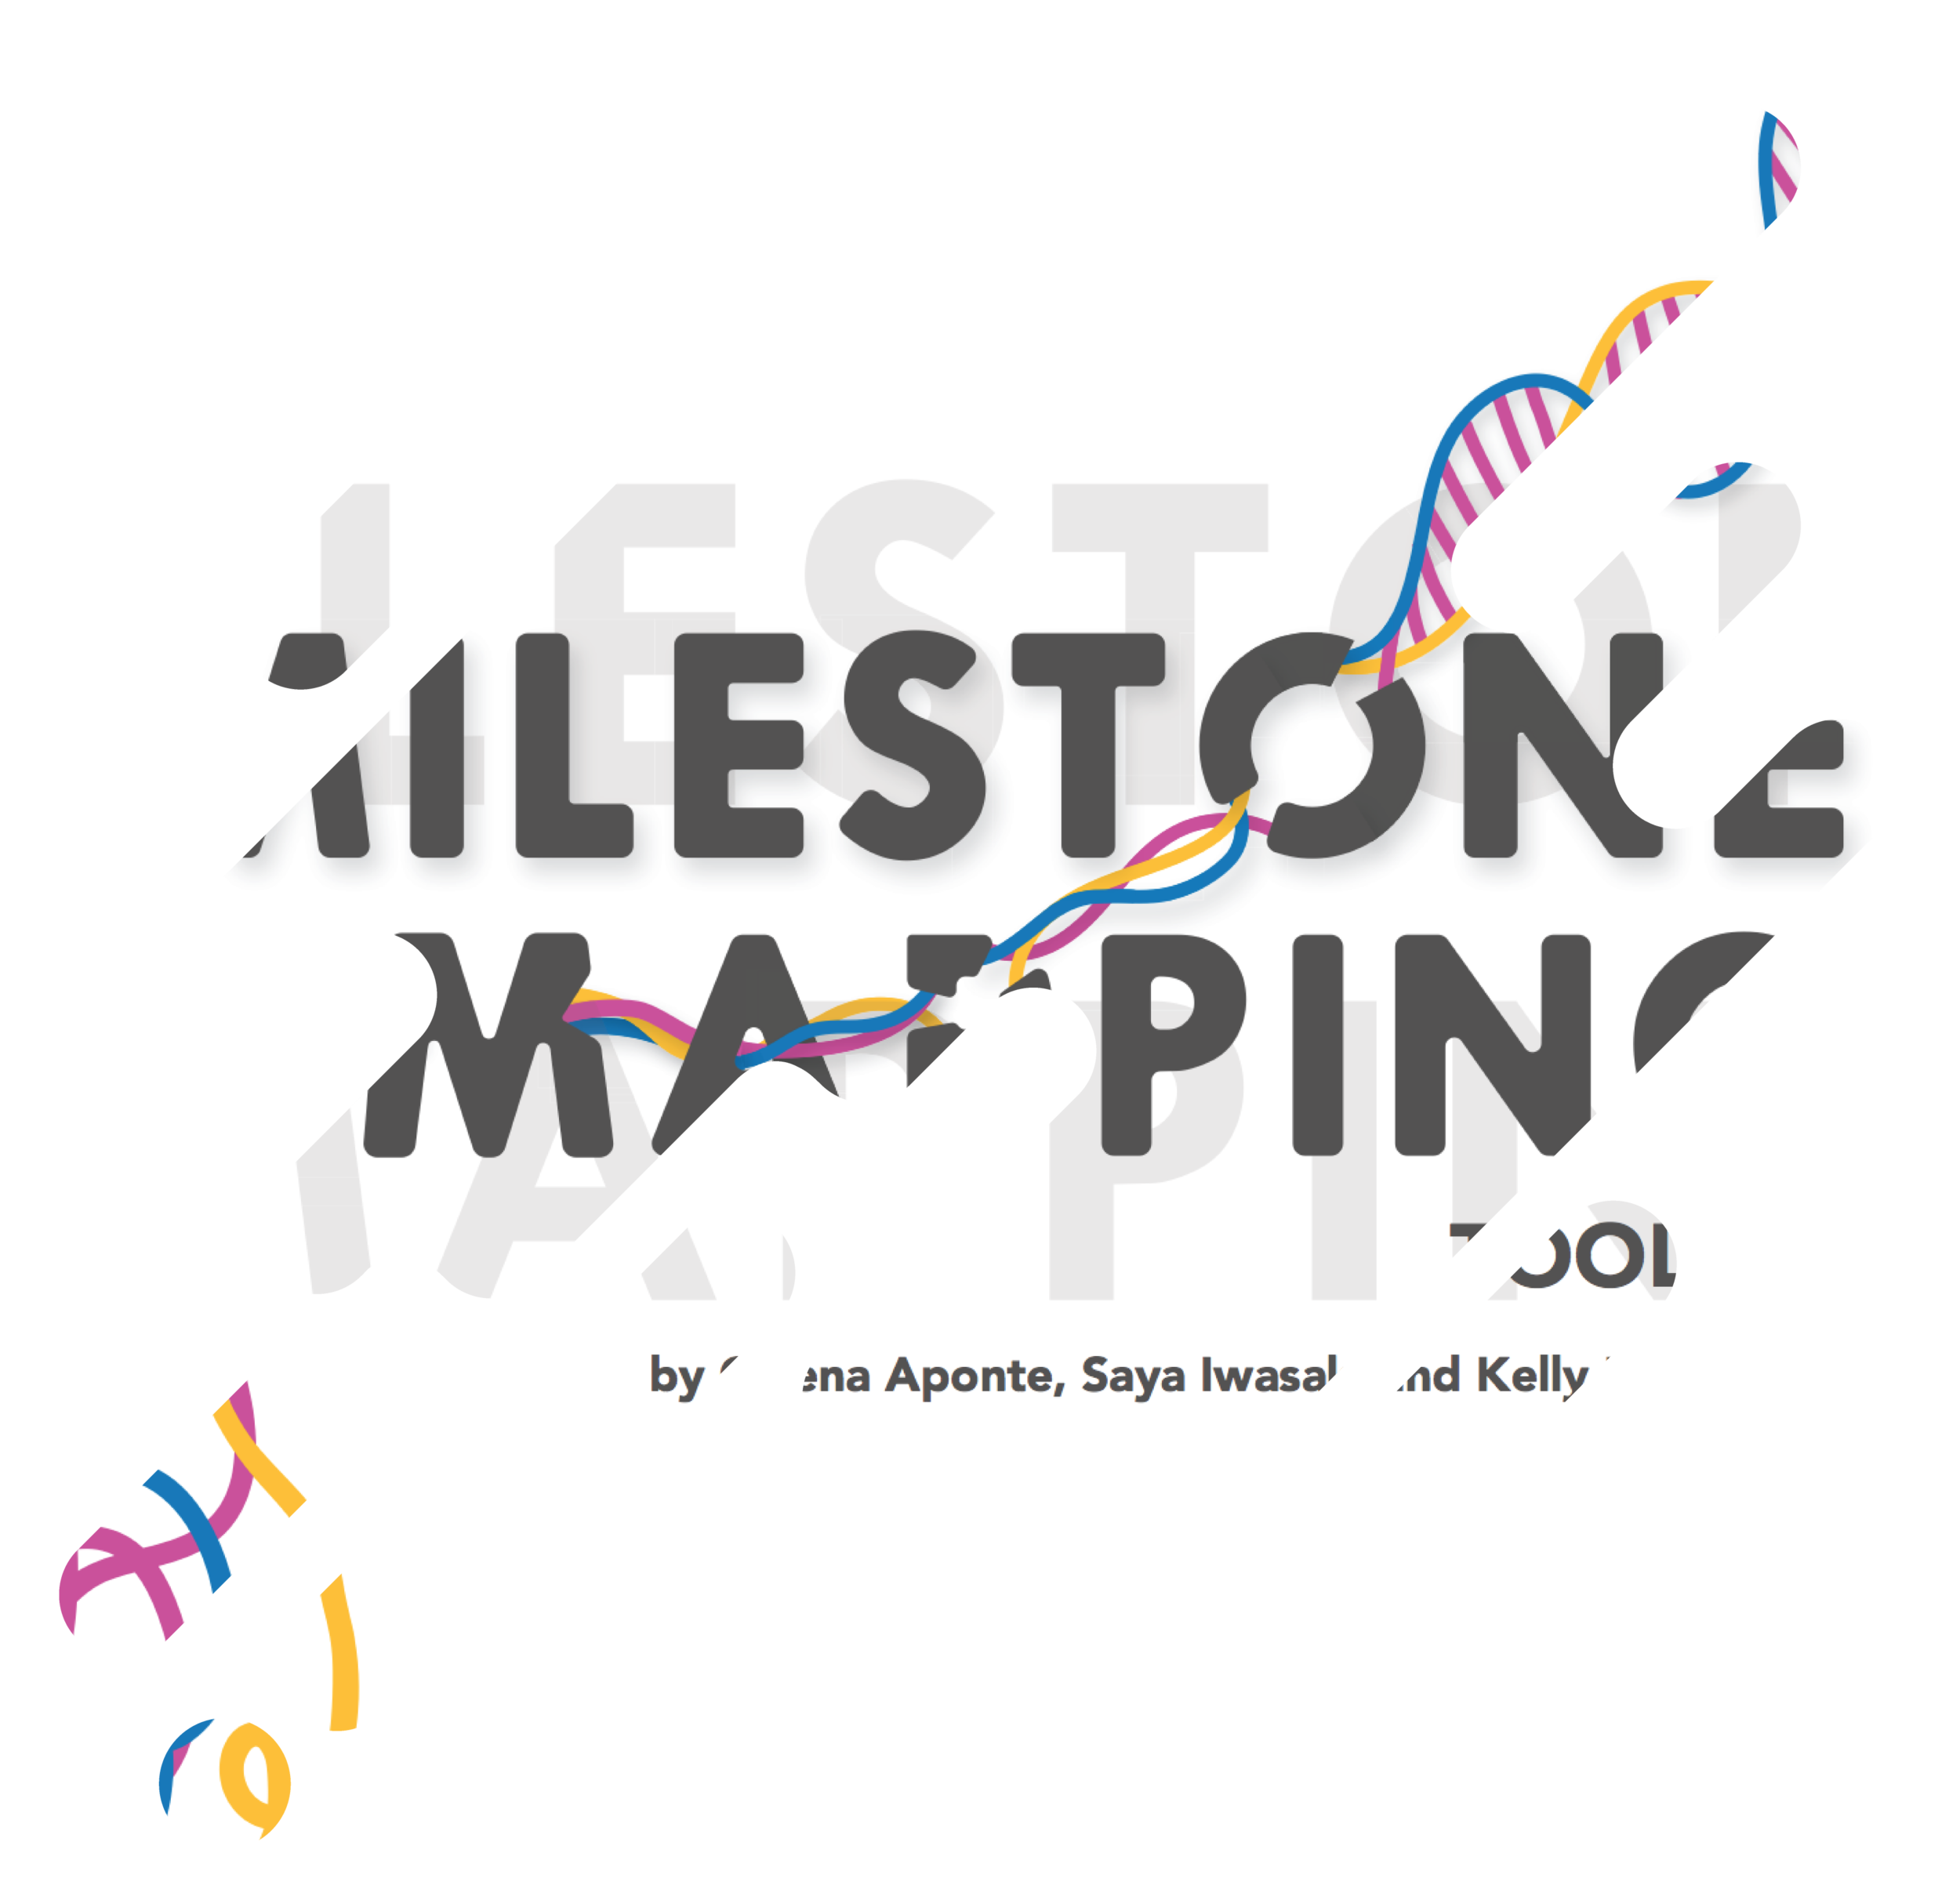 Milestone Mapping is a guide for entrepreneurs to prioritize their critical business milestones and gain clarity around their action plan. -